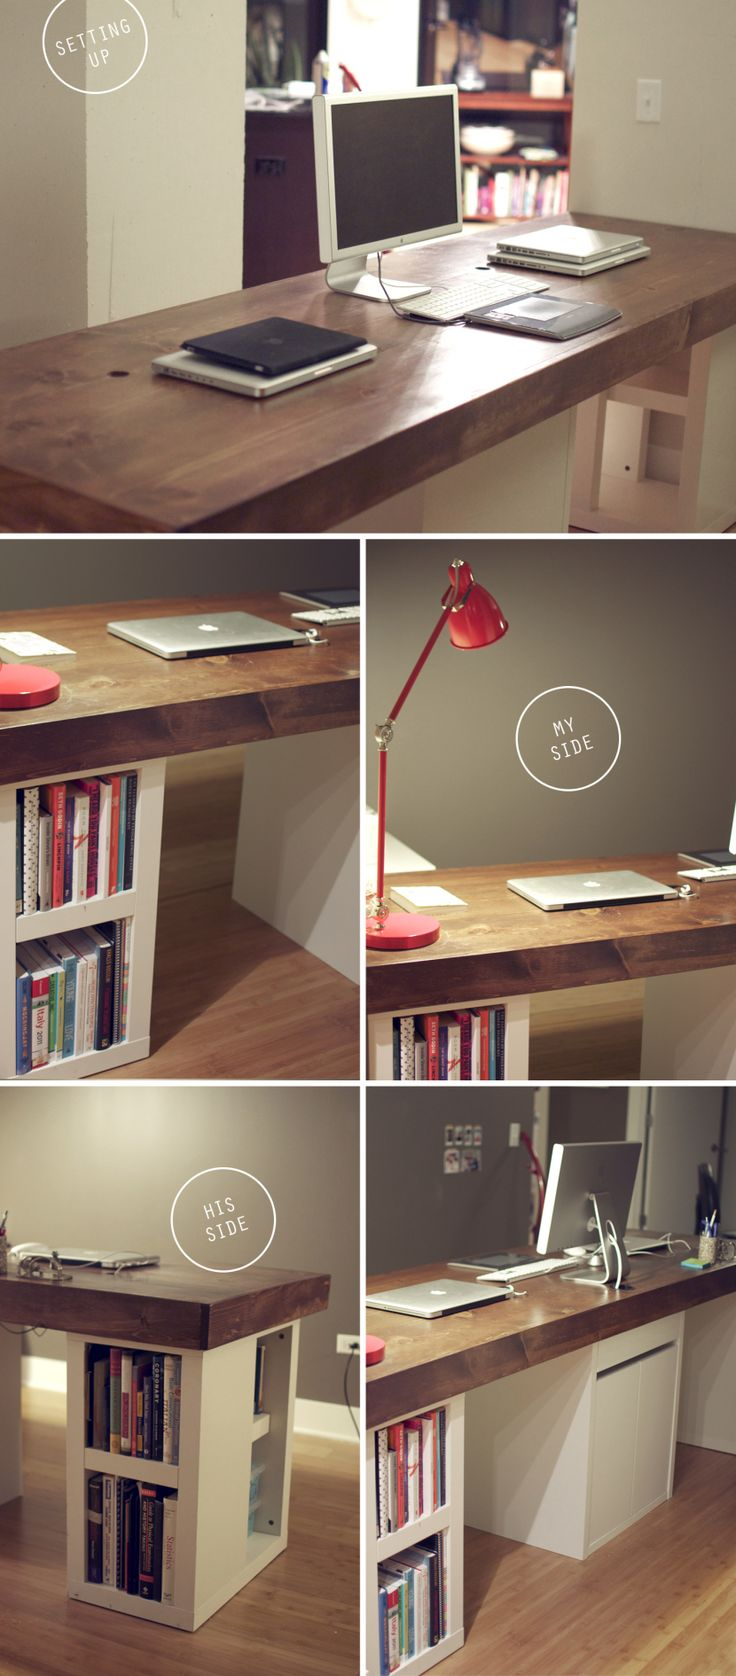 DIY desk...I need to make this for my room... I've always despised my desk, and how cool would it be to make one myself!!